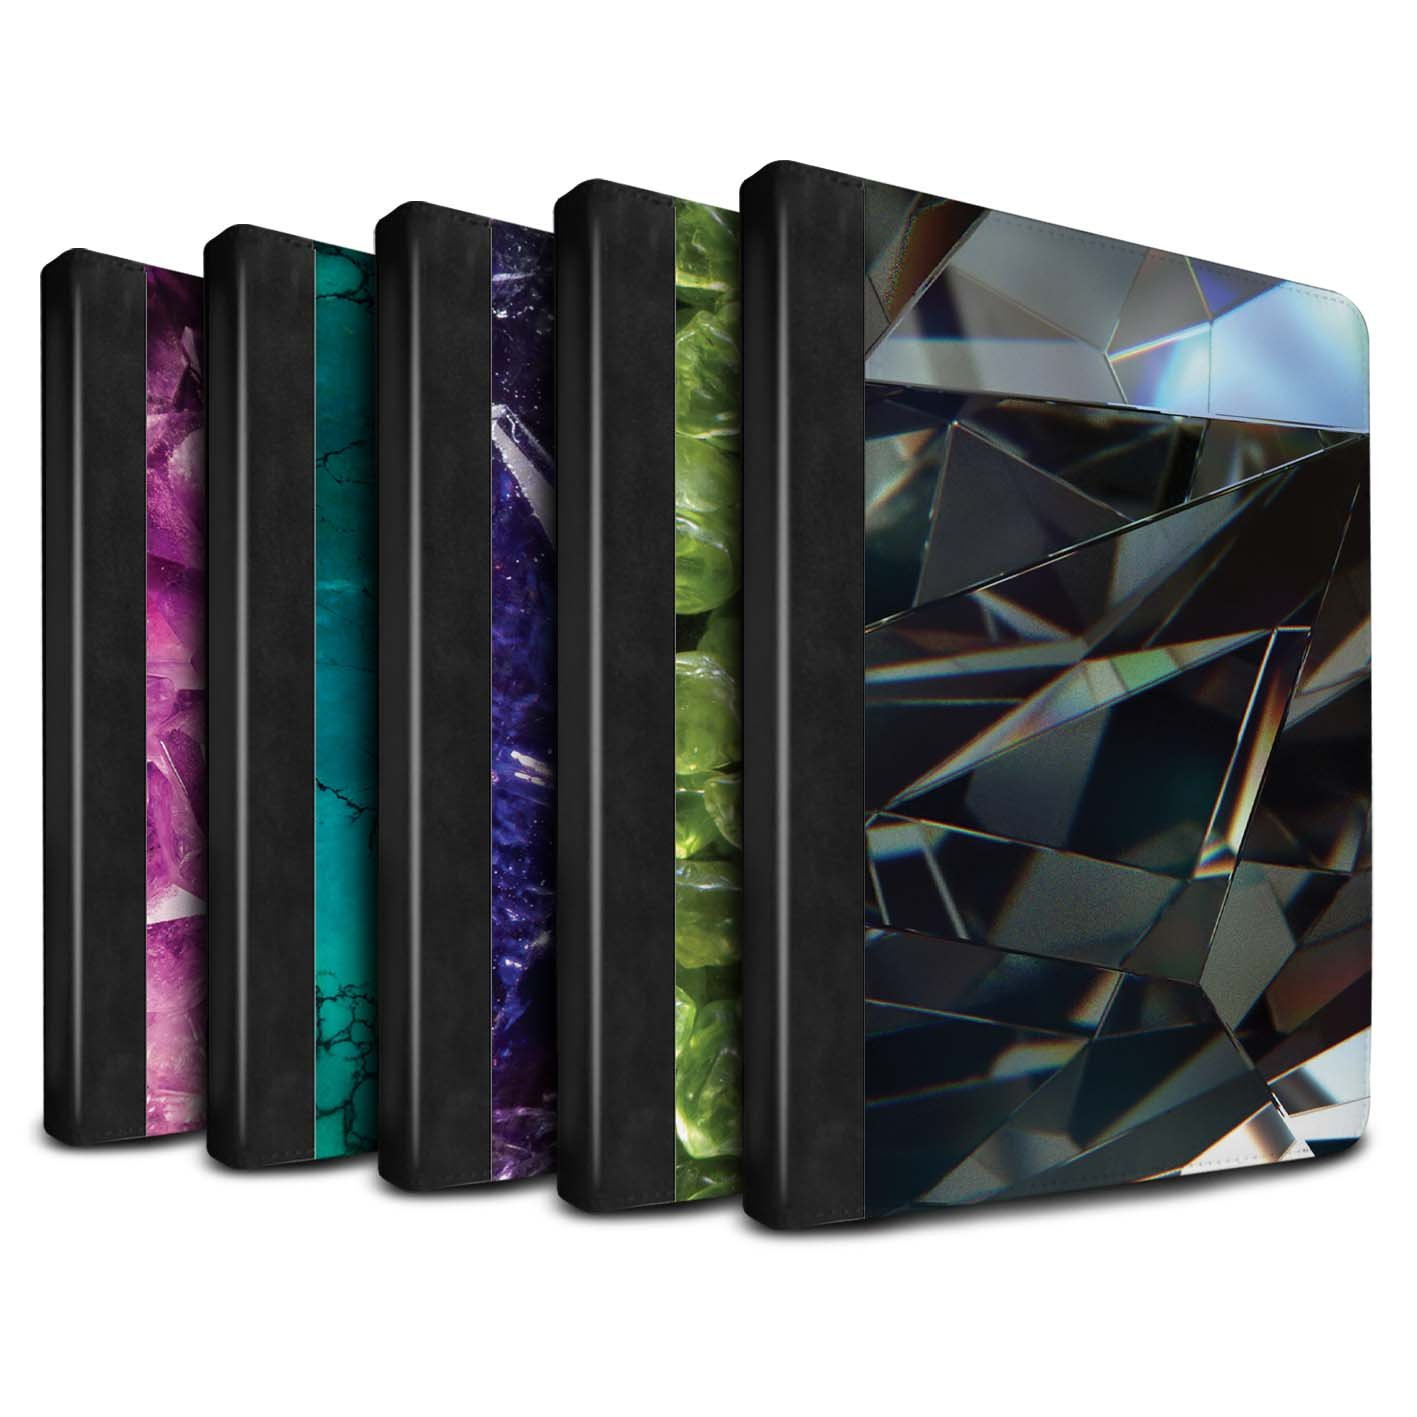 STUFF4 PU Leather Book/Cover Case for Apple iPad Air 2 tablets / Pack 19pcs Design / Birth/Gemstone Collection